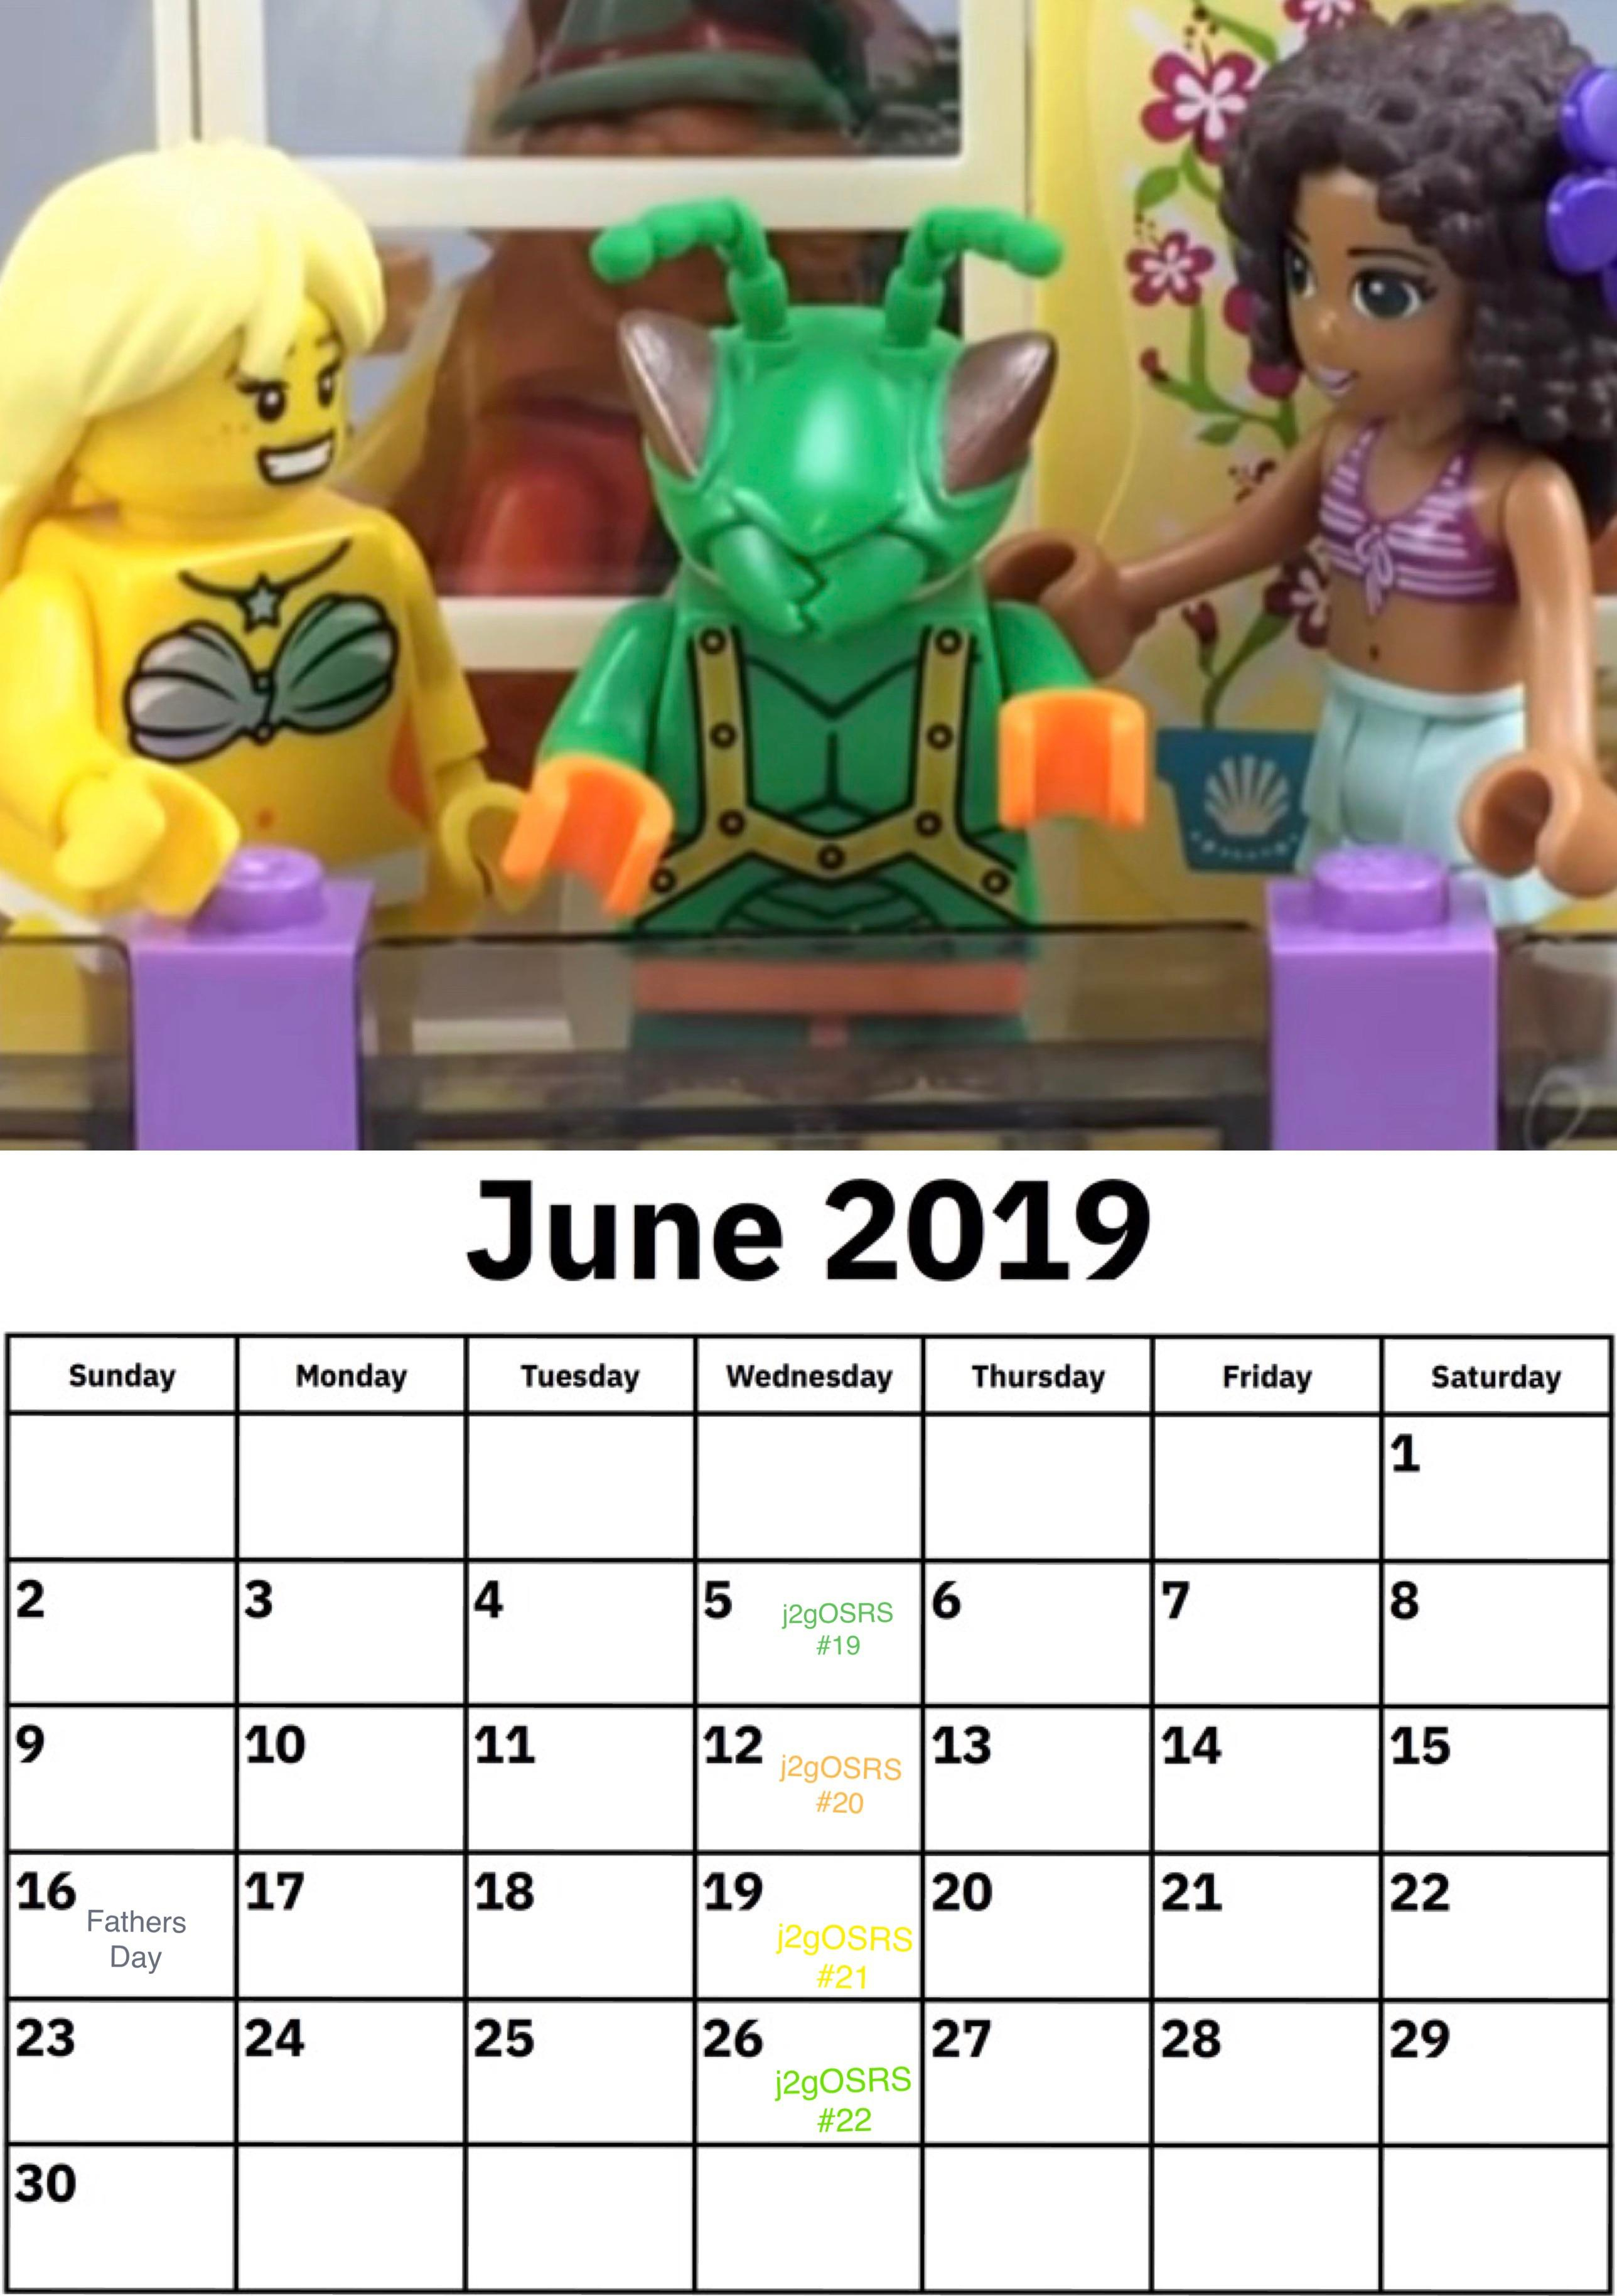 Sub Bros, Here Is Your J2G 2019 Unofficial Calendar For The within 13 Month Calendar Reddit